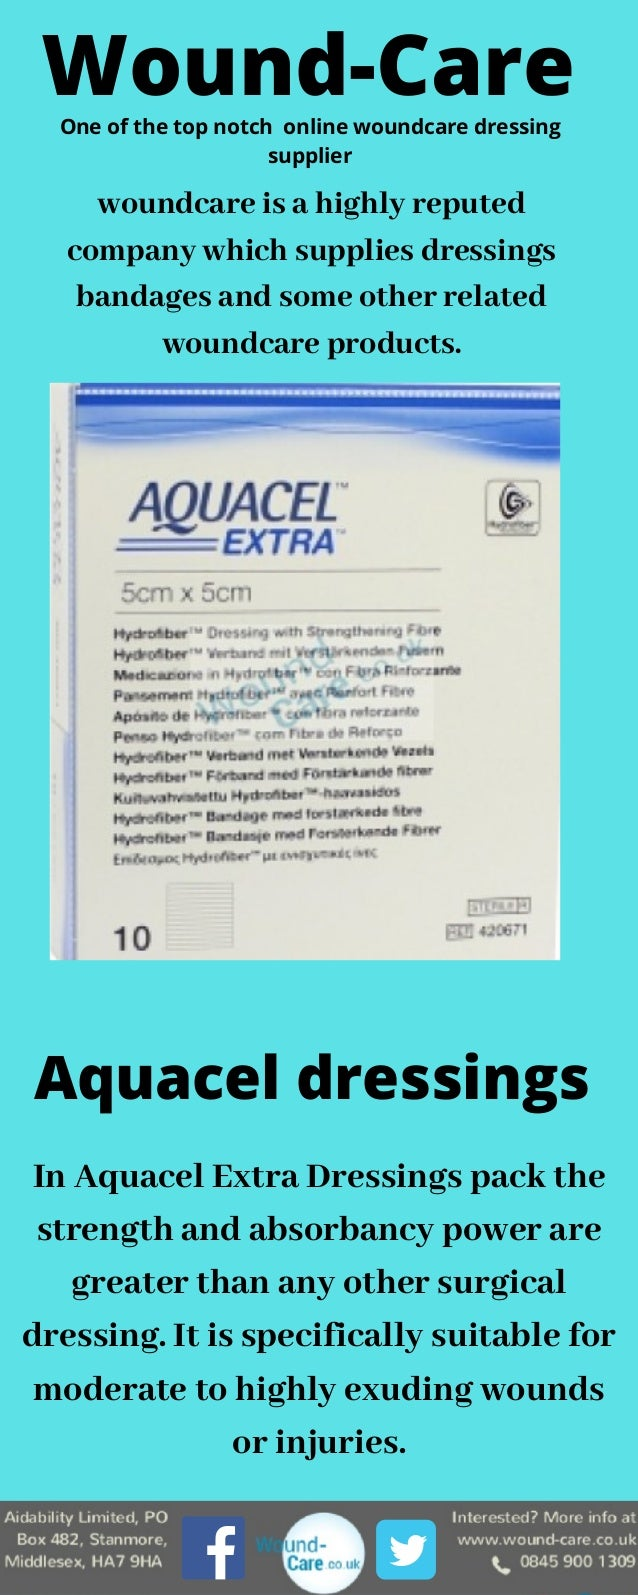 In Aquacel Extra Dressings pack the strength and absorbancy power are greater than any other surgical dressing. It is spec...